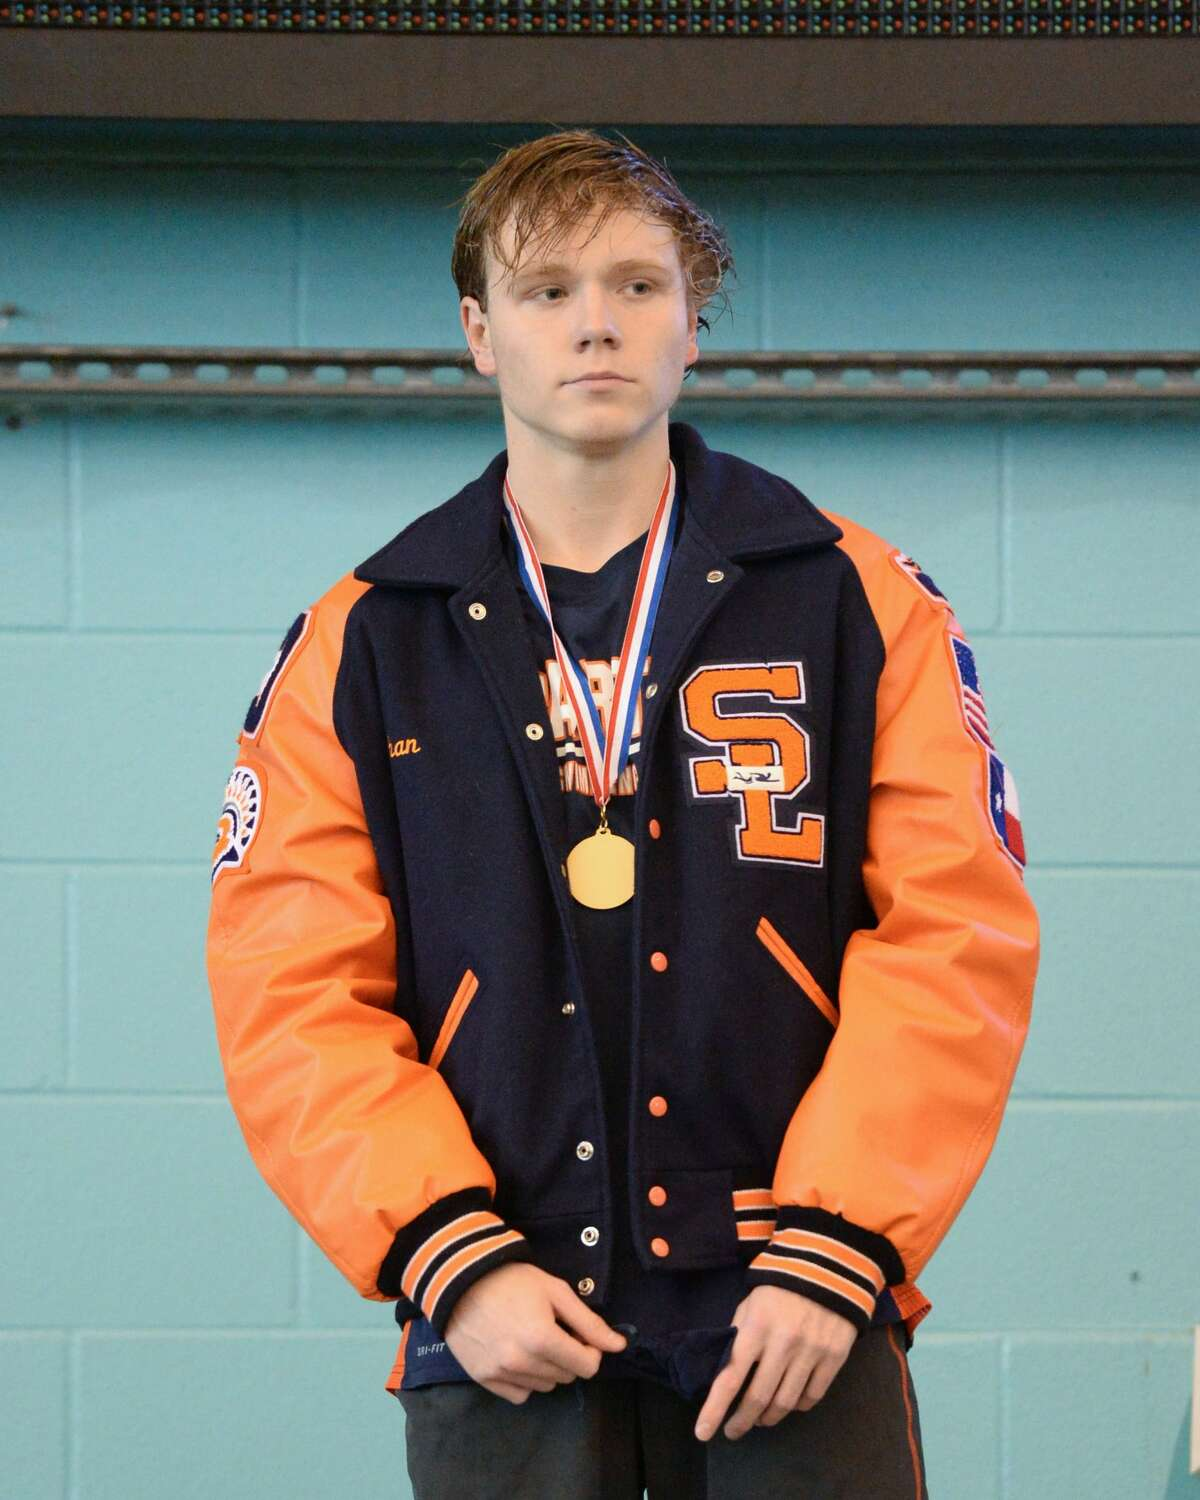 Ethan Autry of Seven Lakes captured first place in the boys 50 yard freestyle at the UIL Conference 5-6A Regional Swimming and Diving Championship on February 4, 2017 at the Don Cook Natatorium, Sugar Land, TX.